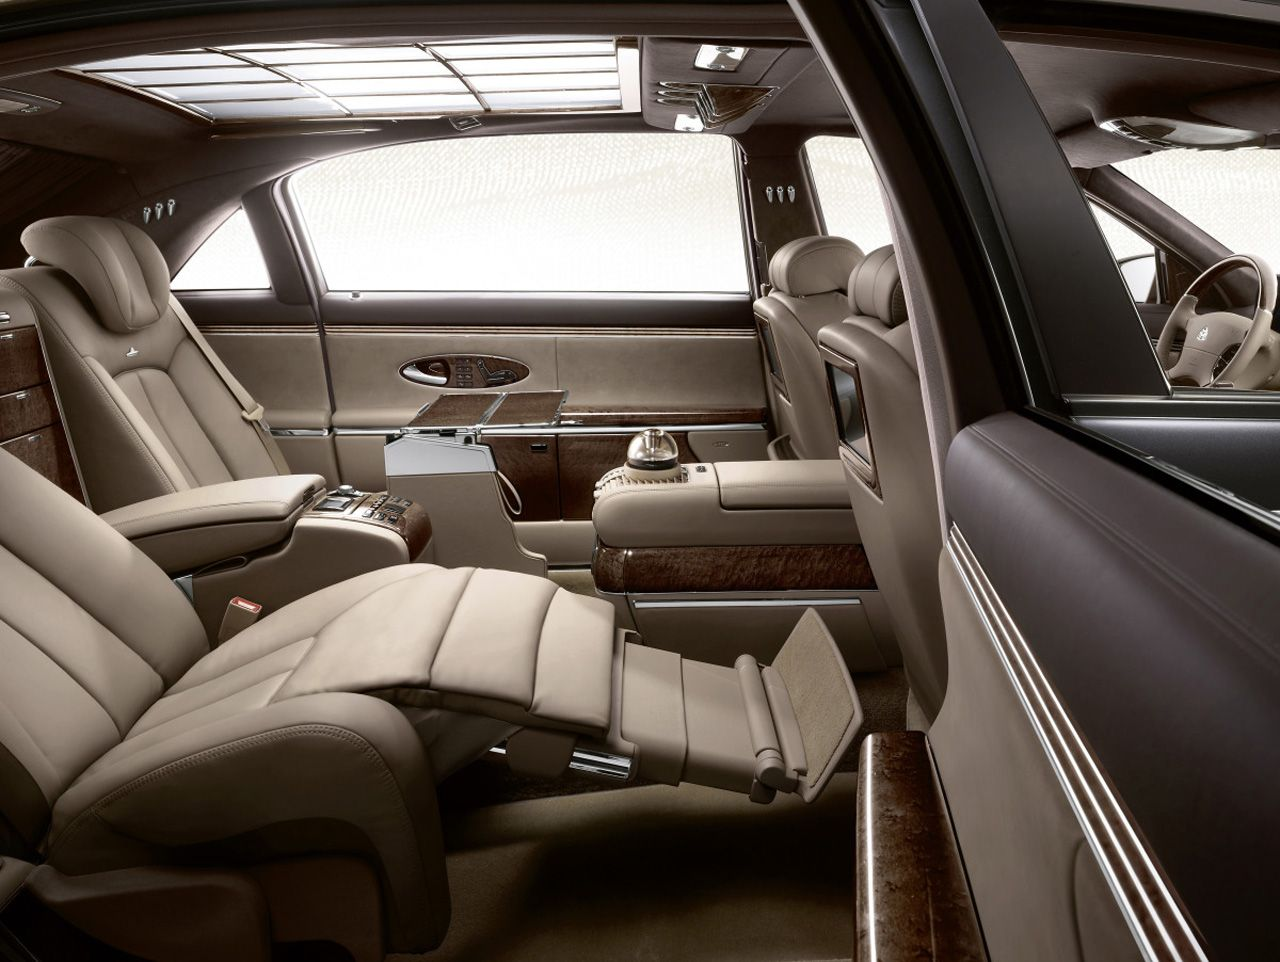 Whats The Big Deal About Maybach? They Donu0027t Even Look That Great On The  Outside For However Maybach Is About Luxury And Comfort, Not Posing. Check  Out The ...